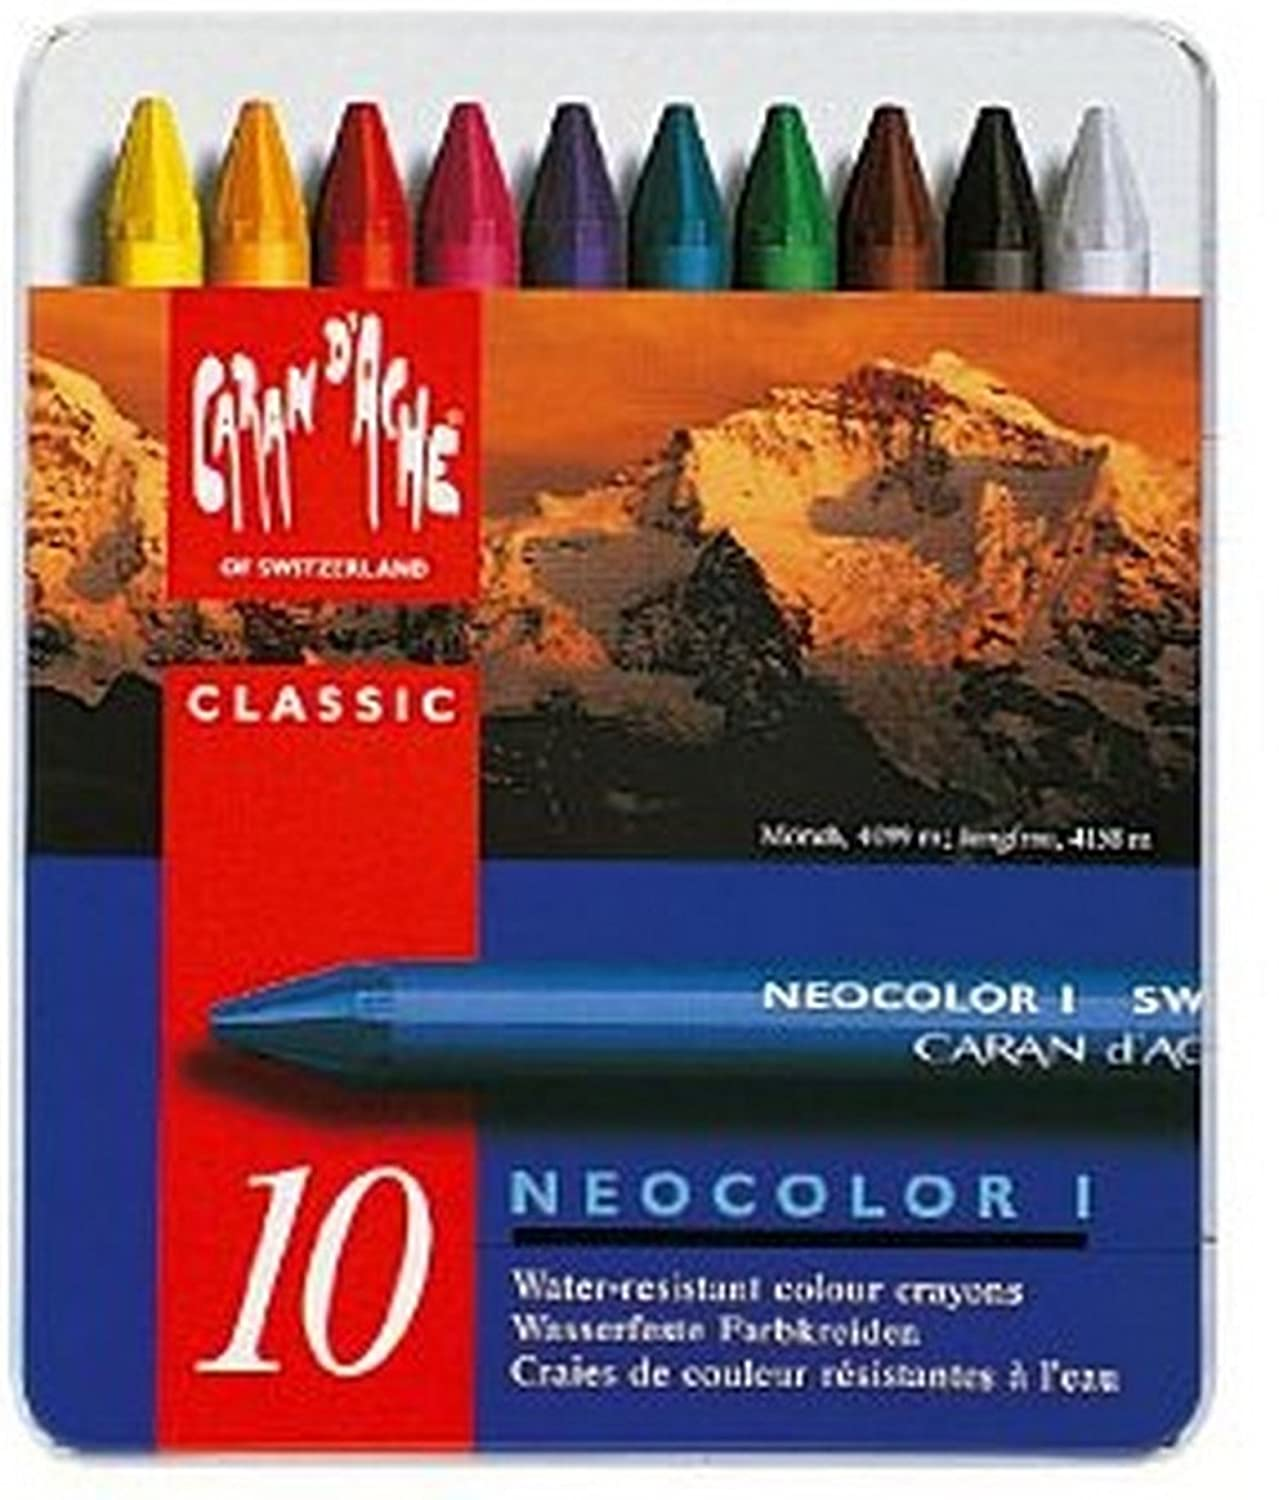 Caran Dache Neocolor I Set Of 10 Wax Oil Crayons Pastels Colour Water Resistant Art Sketching Metal Case 7000_310